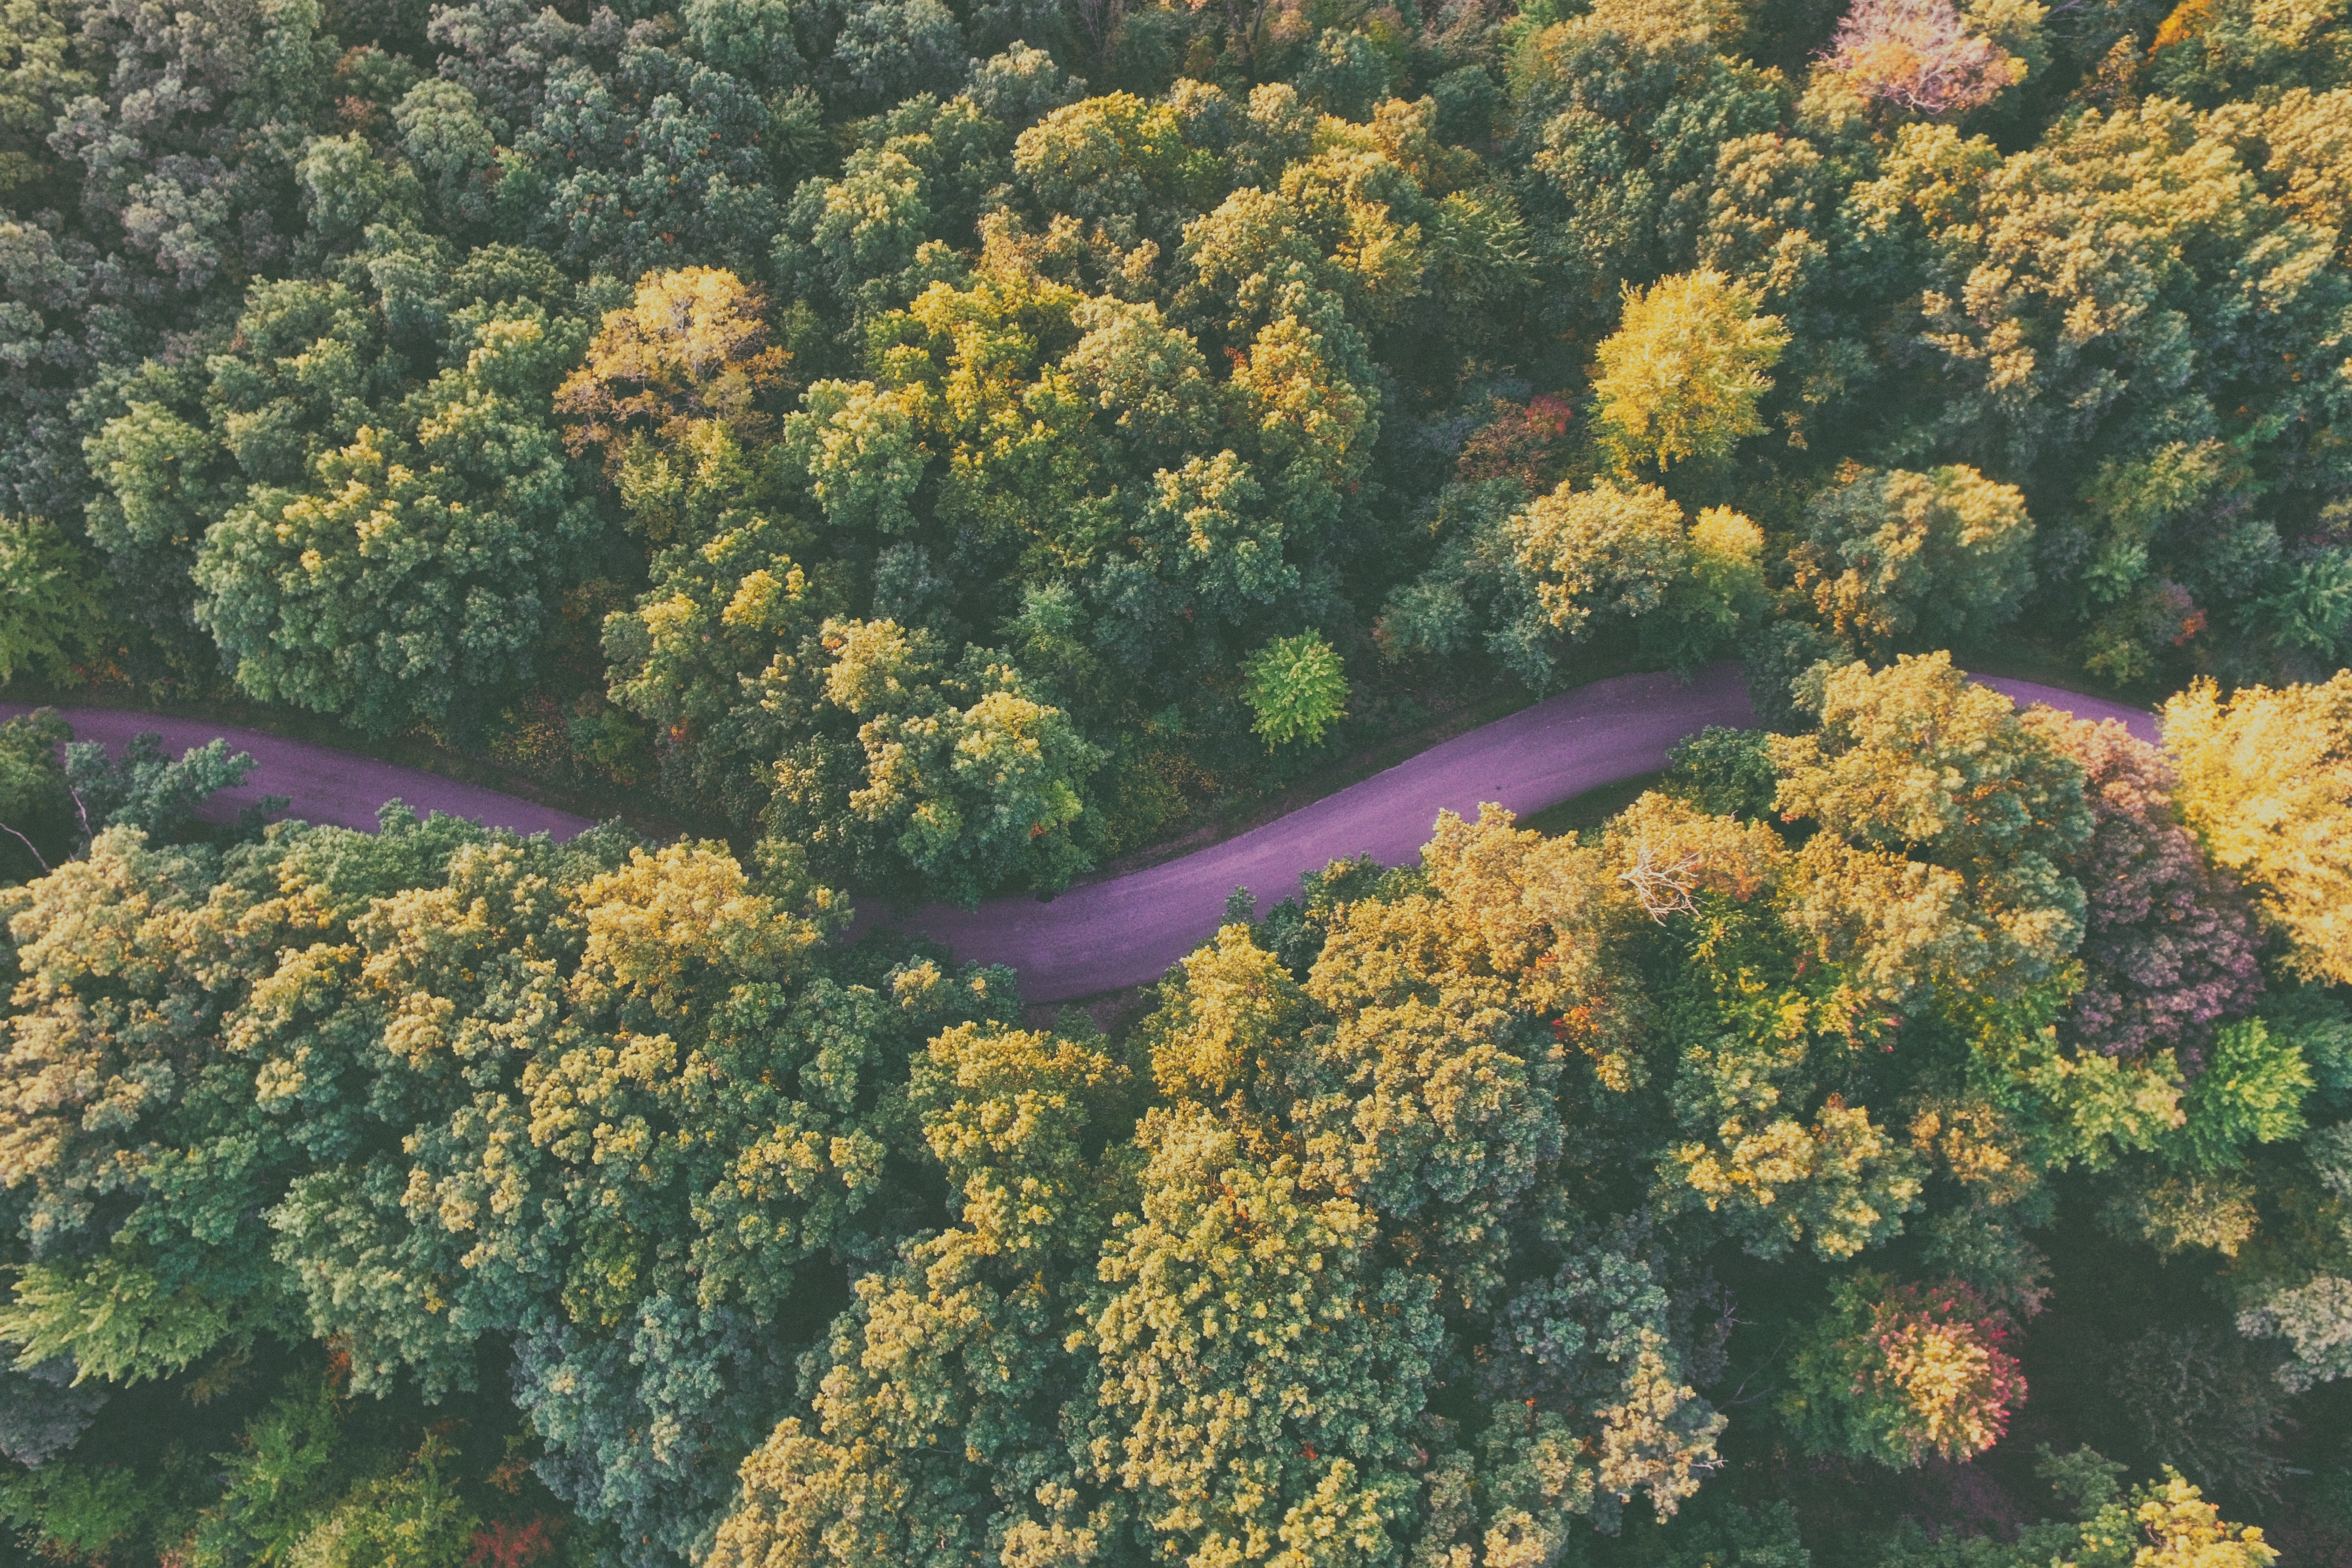 A drone shot of a purple-hued winding road through a forest